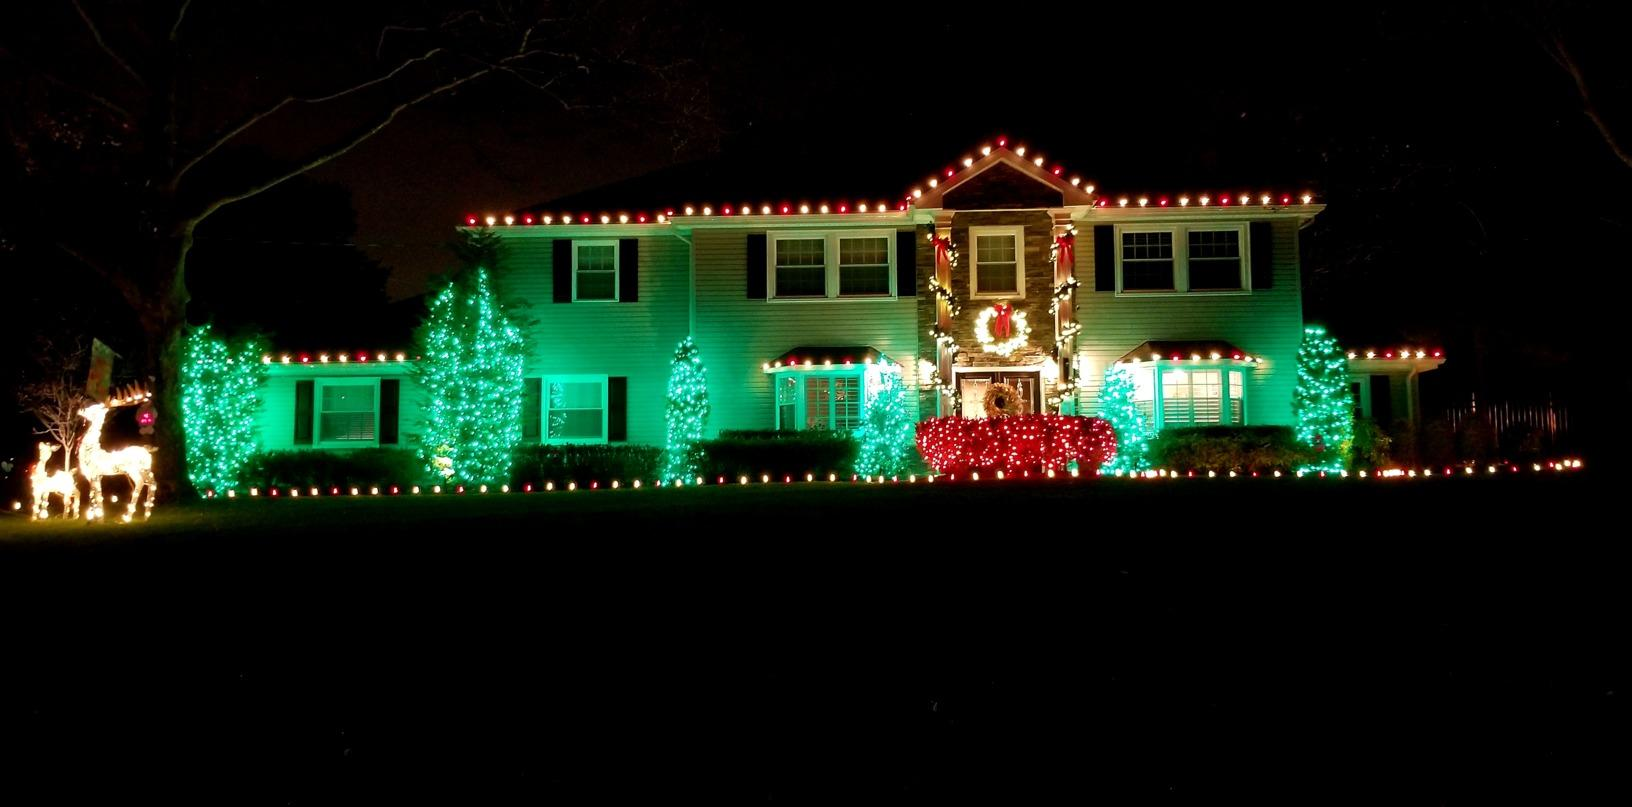 Bringing the Holiday Spirit to Middletown, NJ - After Photo